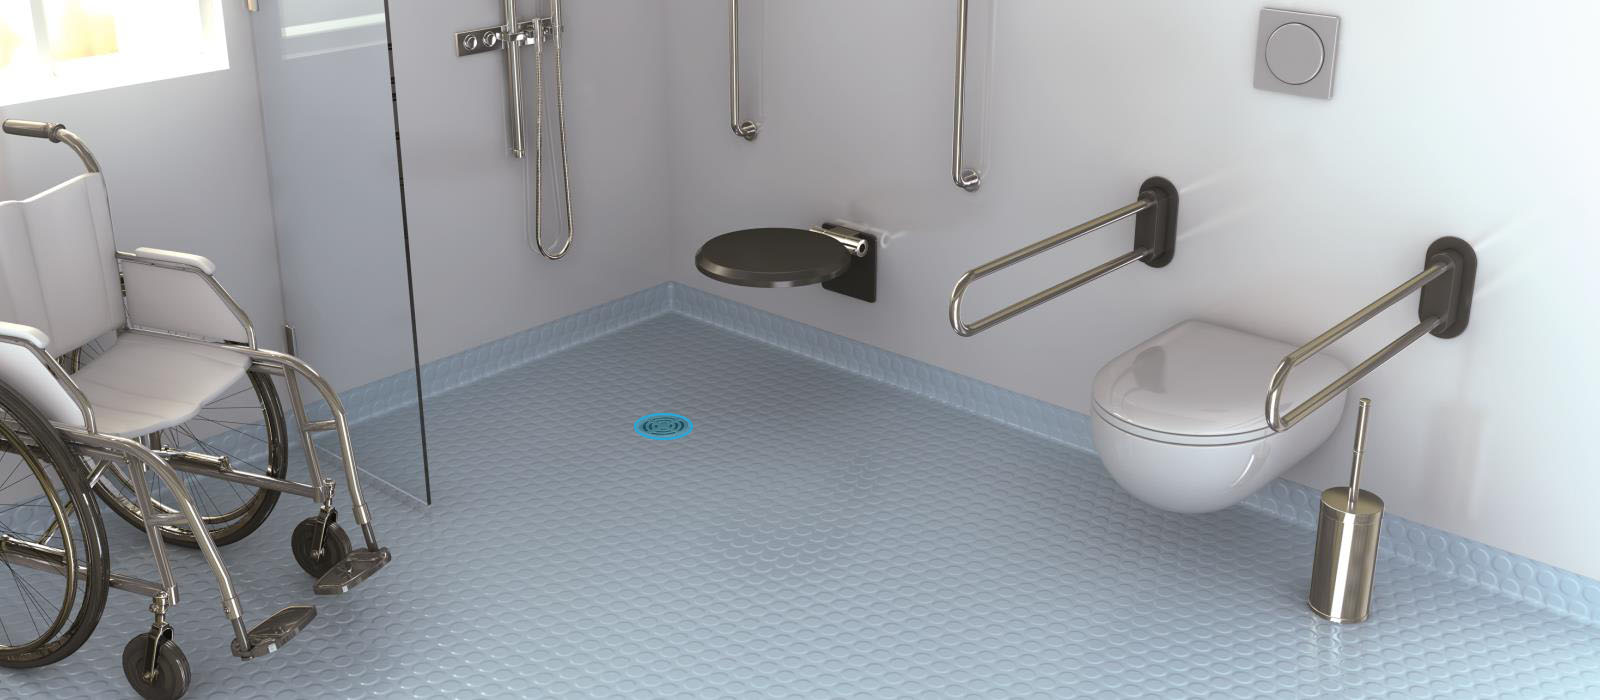 Horizontal drain for wedi Solso (point drainage)